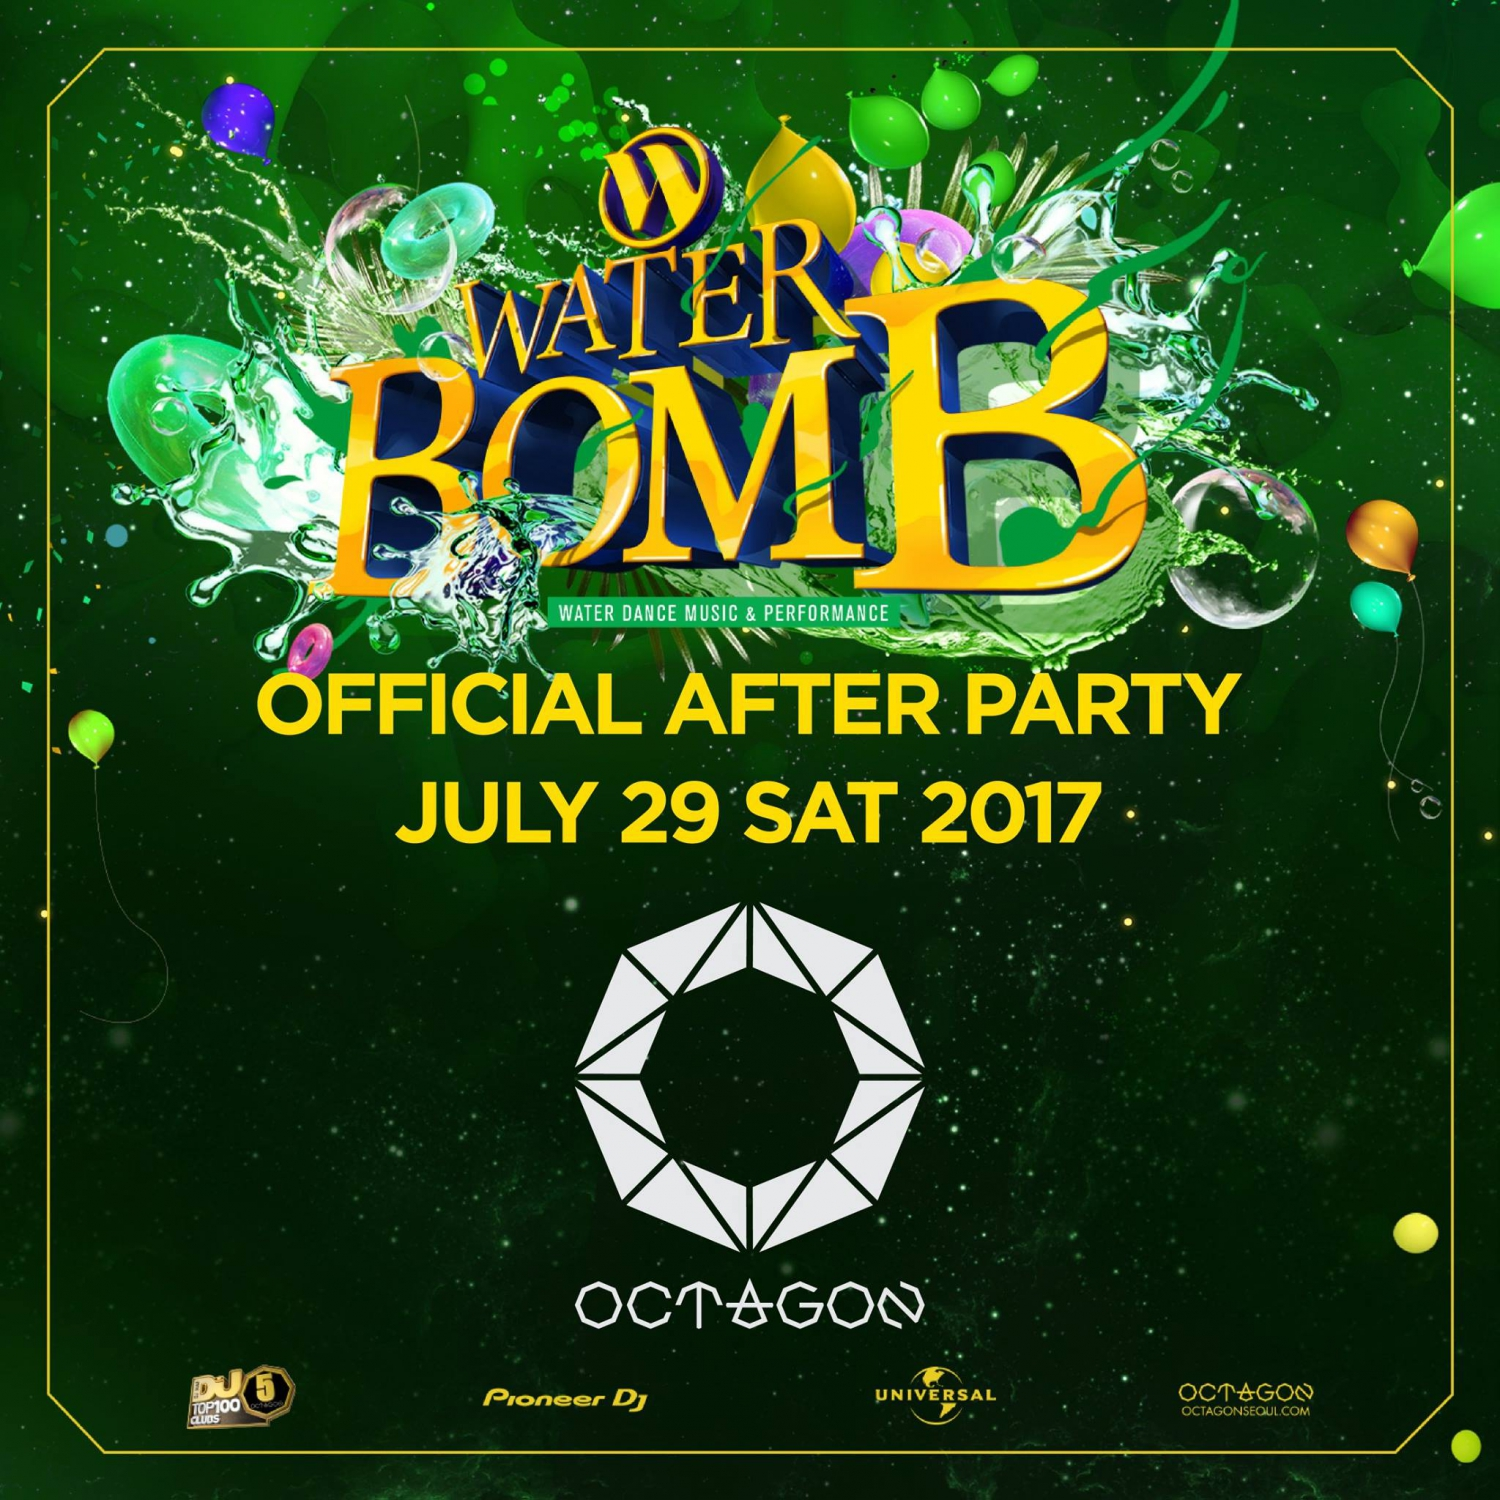 WATERBOMB 2017 AFTER PARTY